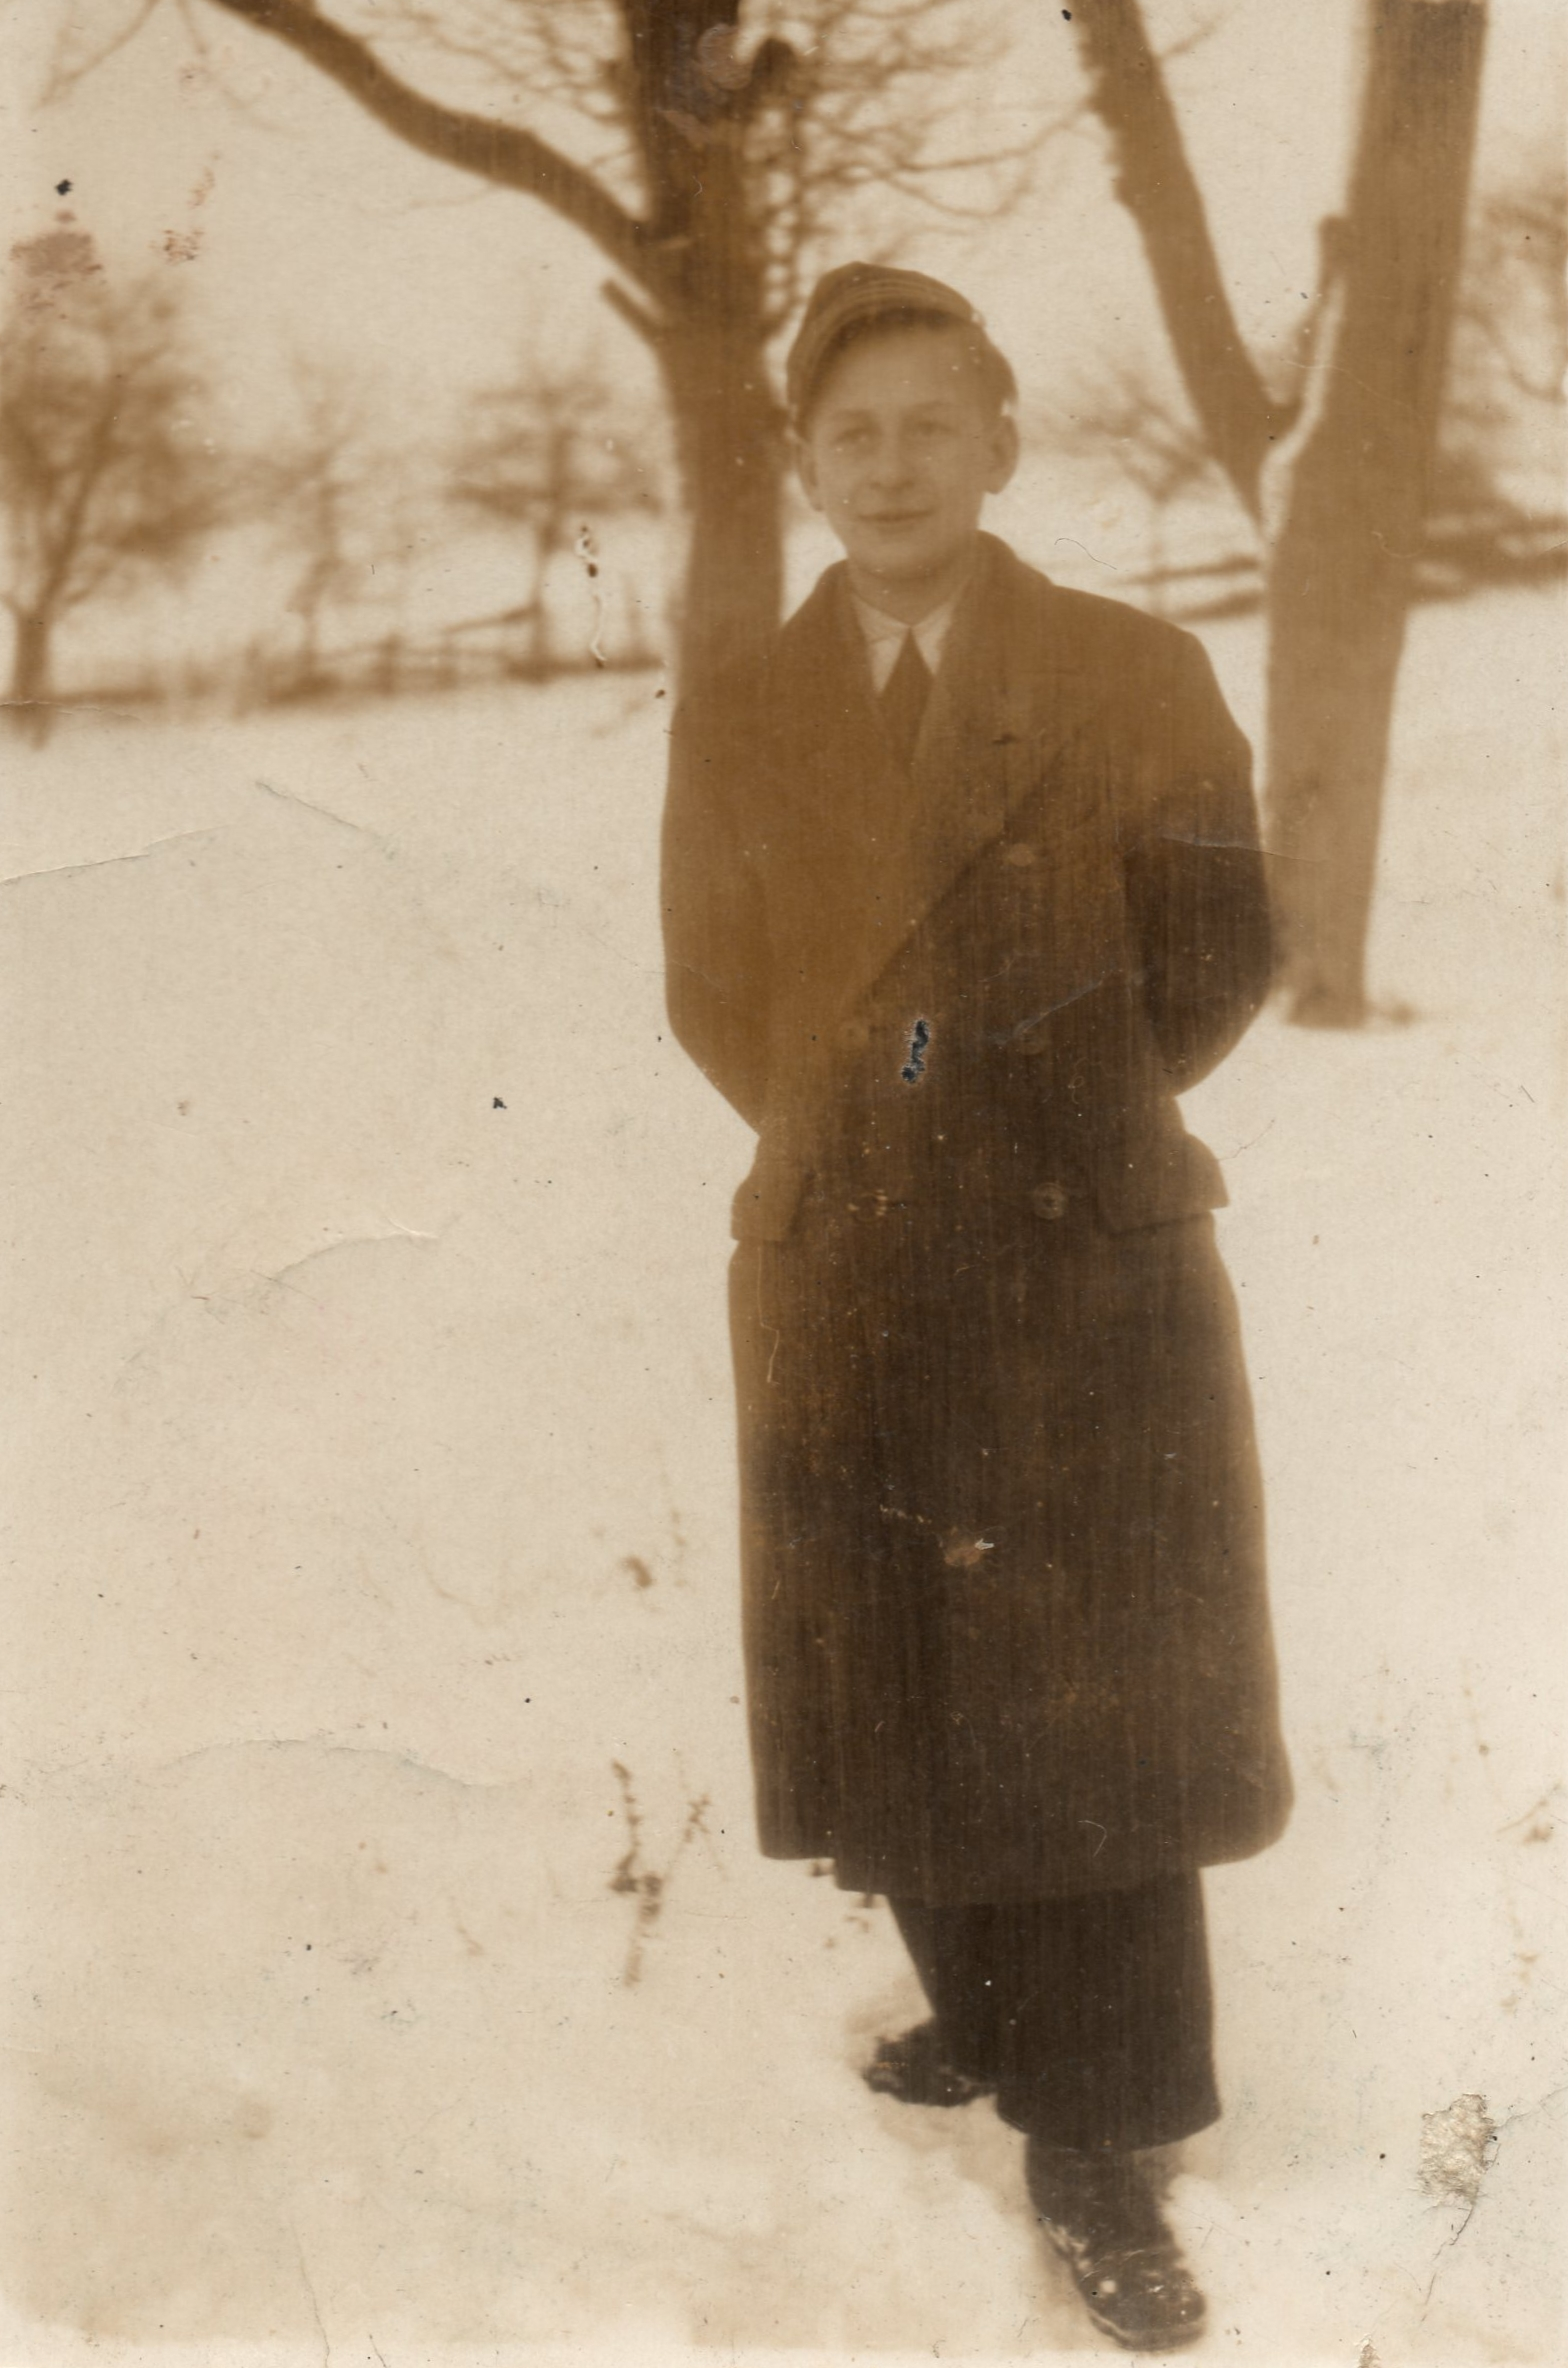 A sepia photograph  of Michal in a winter coat, standing in a field of snow. Trees in the background.